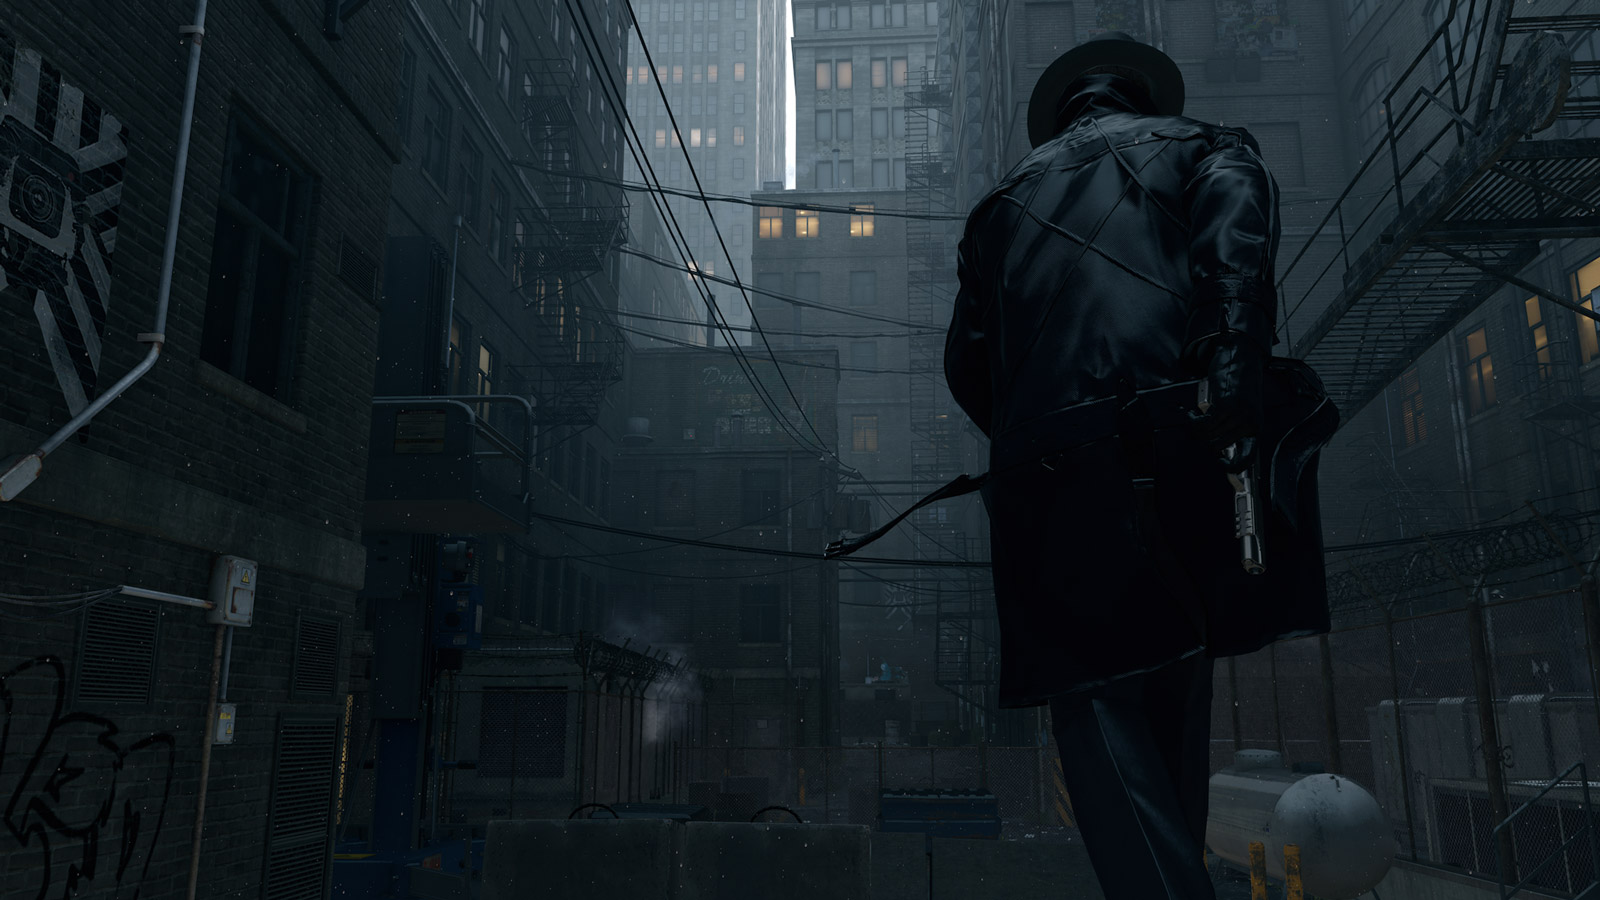 Free Watch Dogs Wallpaper in 1600x900